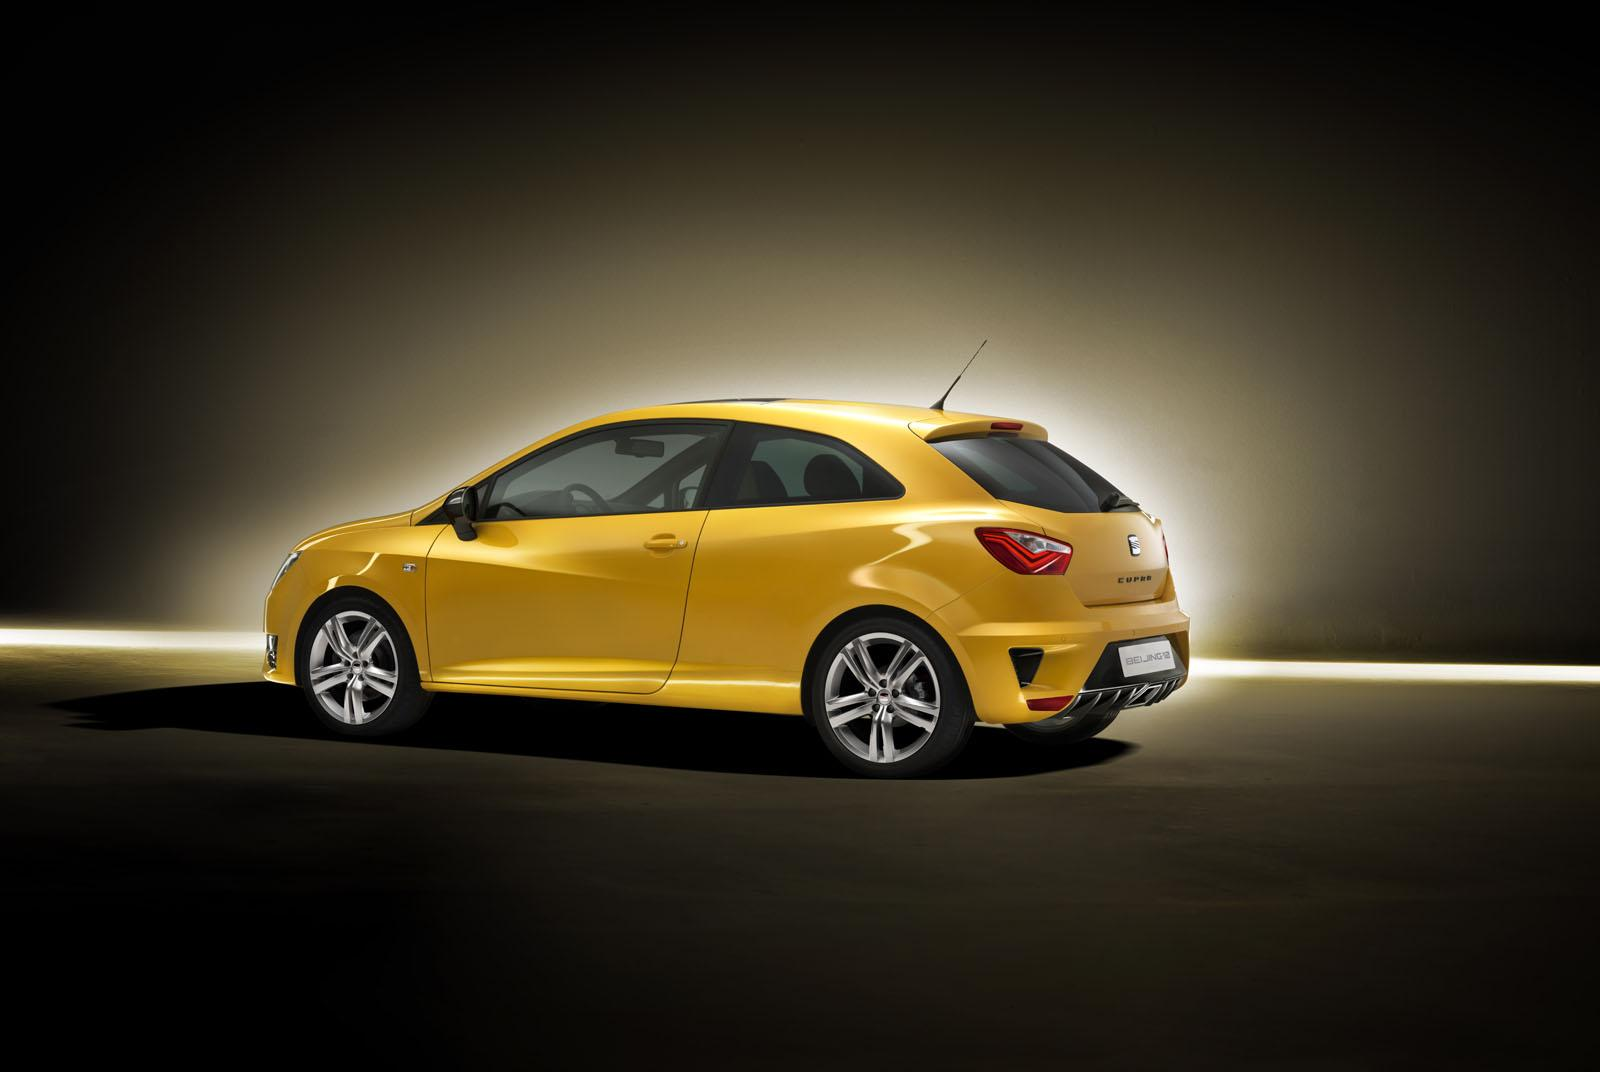 2012 seat ibiza cupra concept unveiled autoevolution. Black Bedroom Furniture Sets. Home Design Ideas